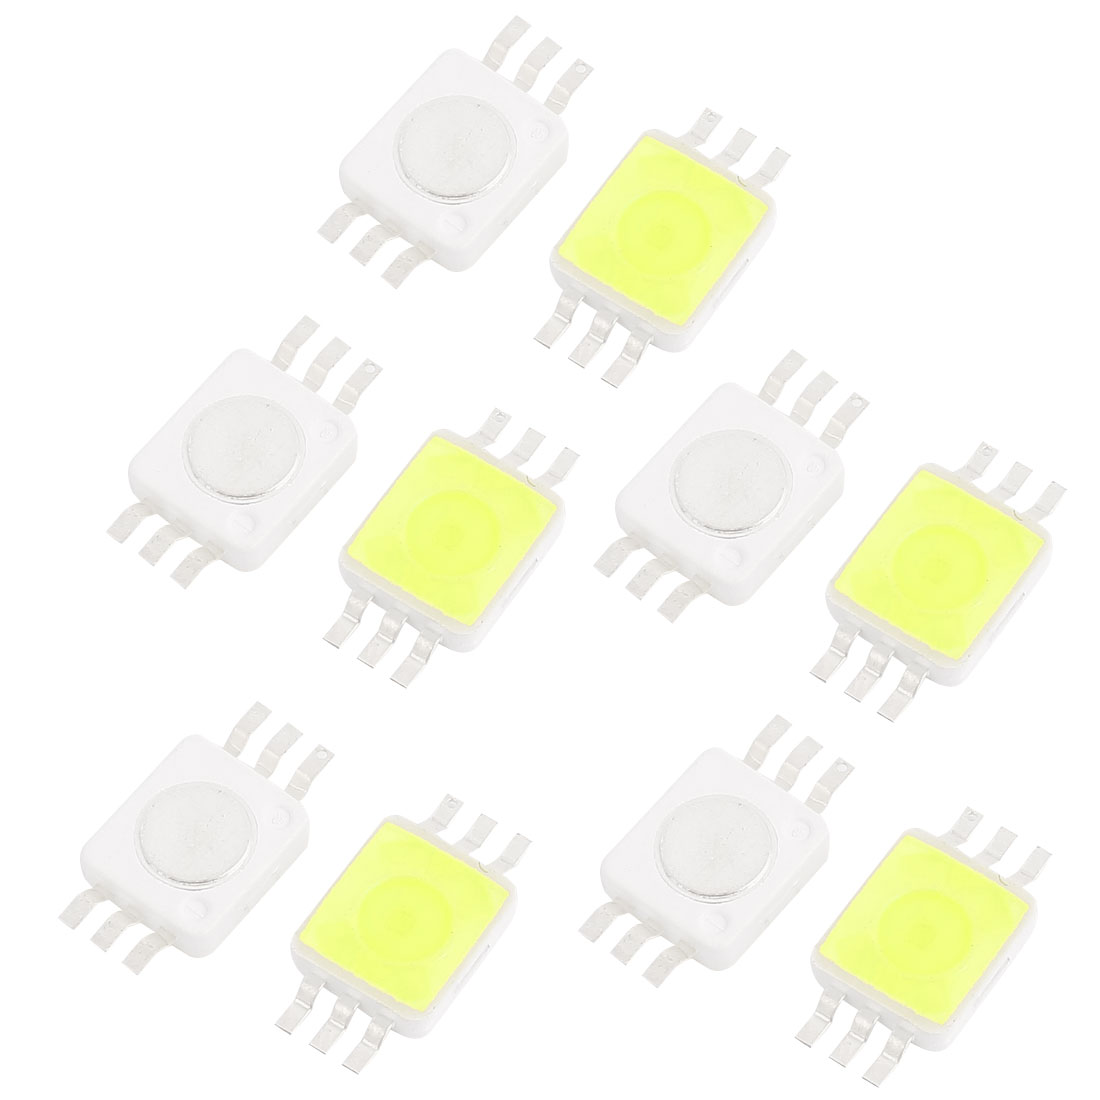 10 Pcs Pure White Light SMD 9280 LED Bead Chip Lamp 3.0-3.6V 350mA 1W 80LM